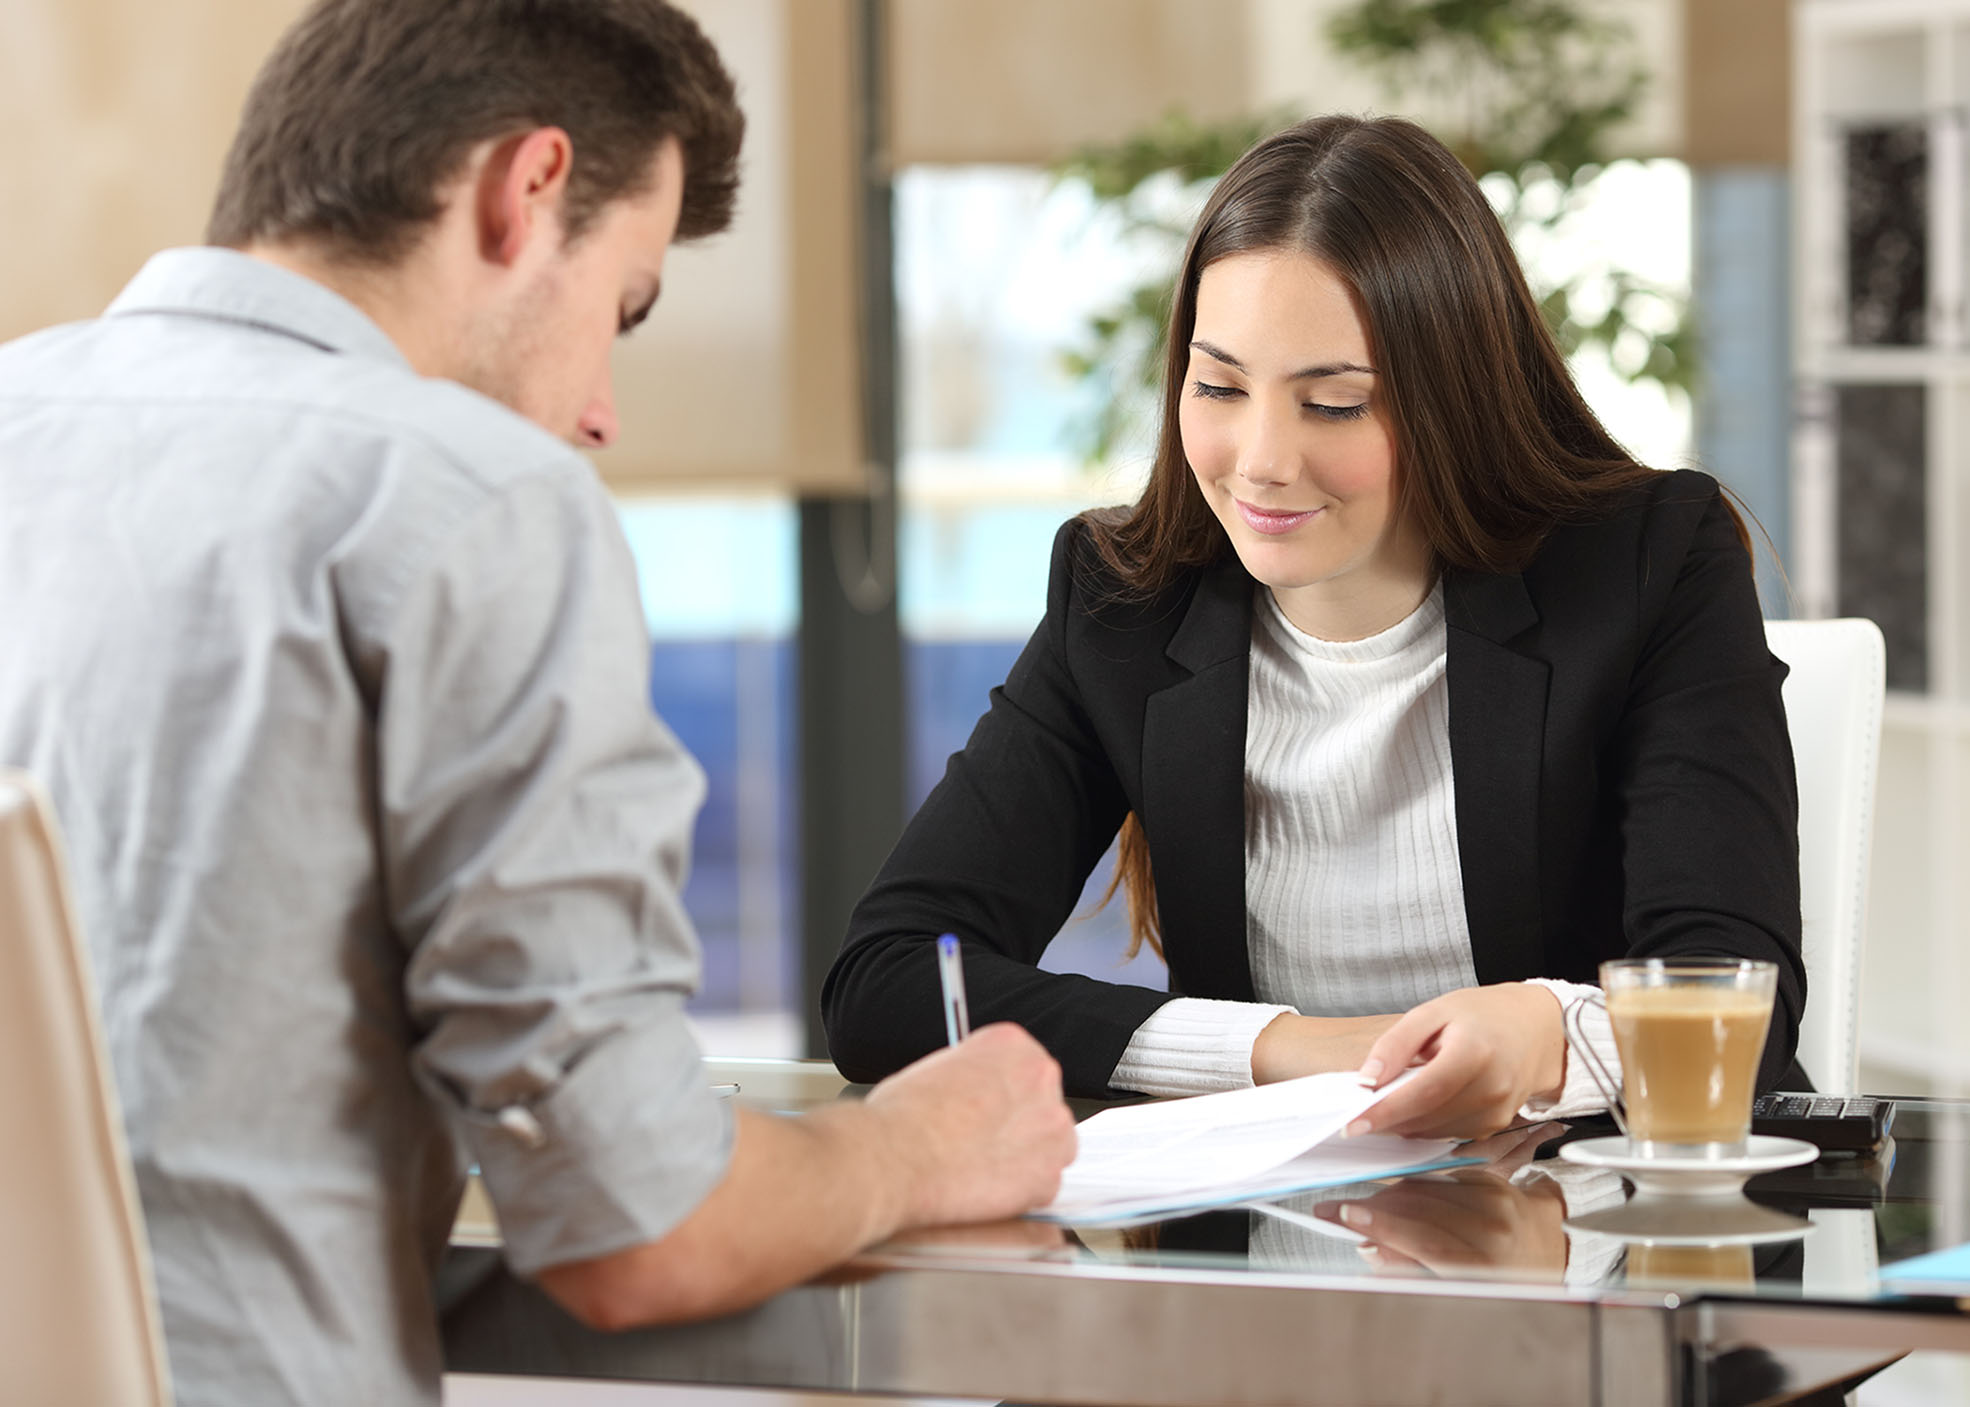 How Hard Is It To Get a Business Loan With Bad Credit?